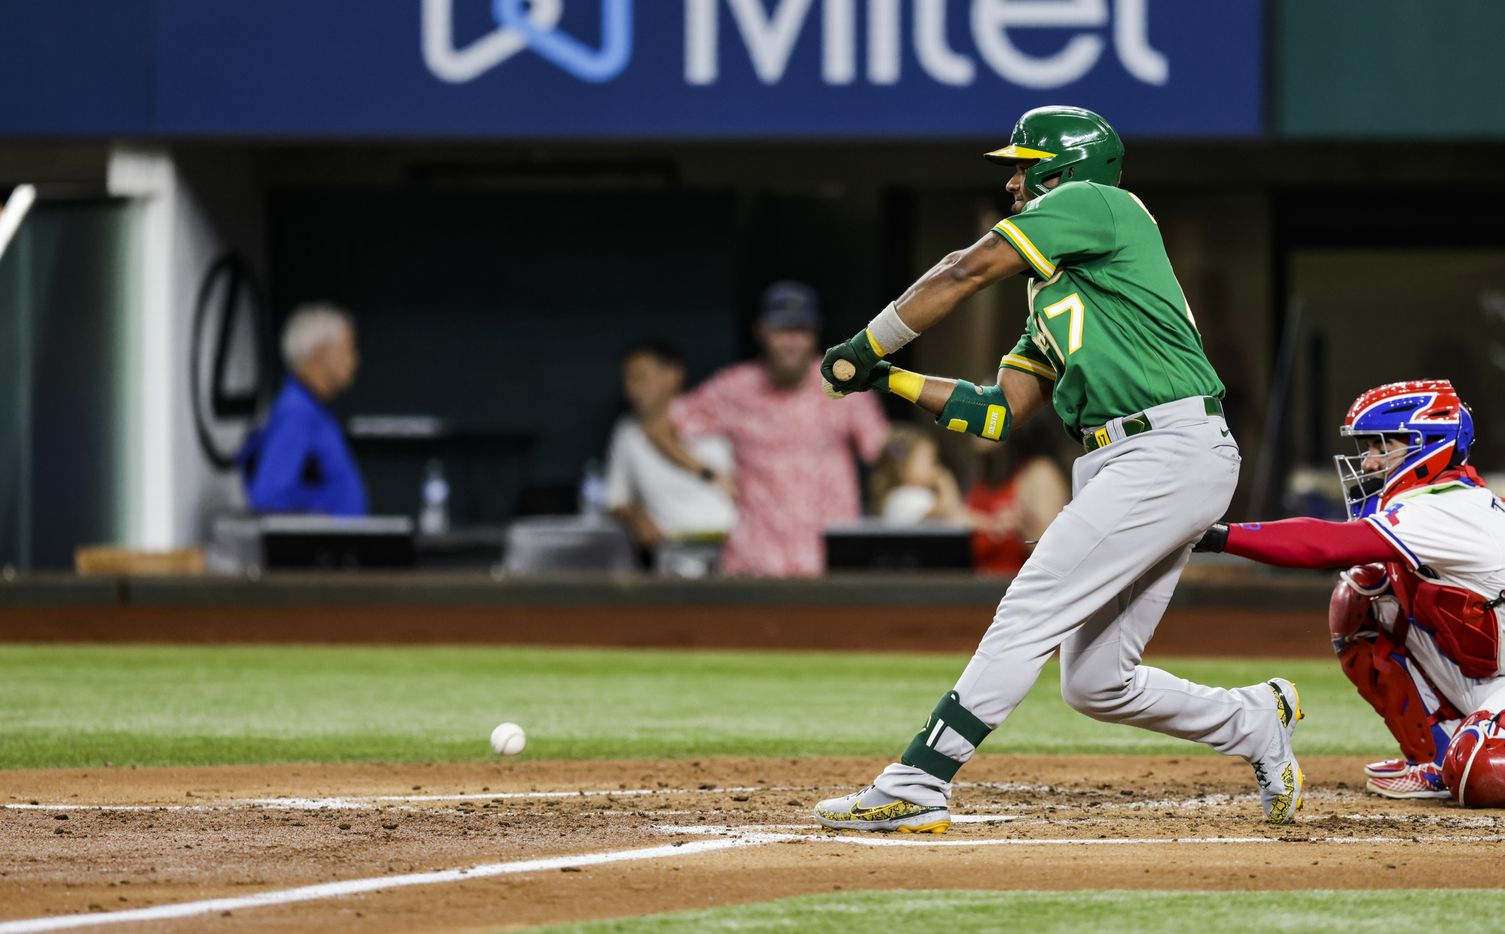 Oakland Athletics' Elvis Andrus (17) grounds out to first in his first at bat during the second inning of a baseball game against the Texas Rangers in Arlington, Monday, June 21, 2021. (Brandon Wade/Special Contributor)